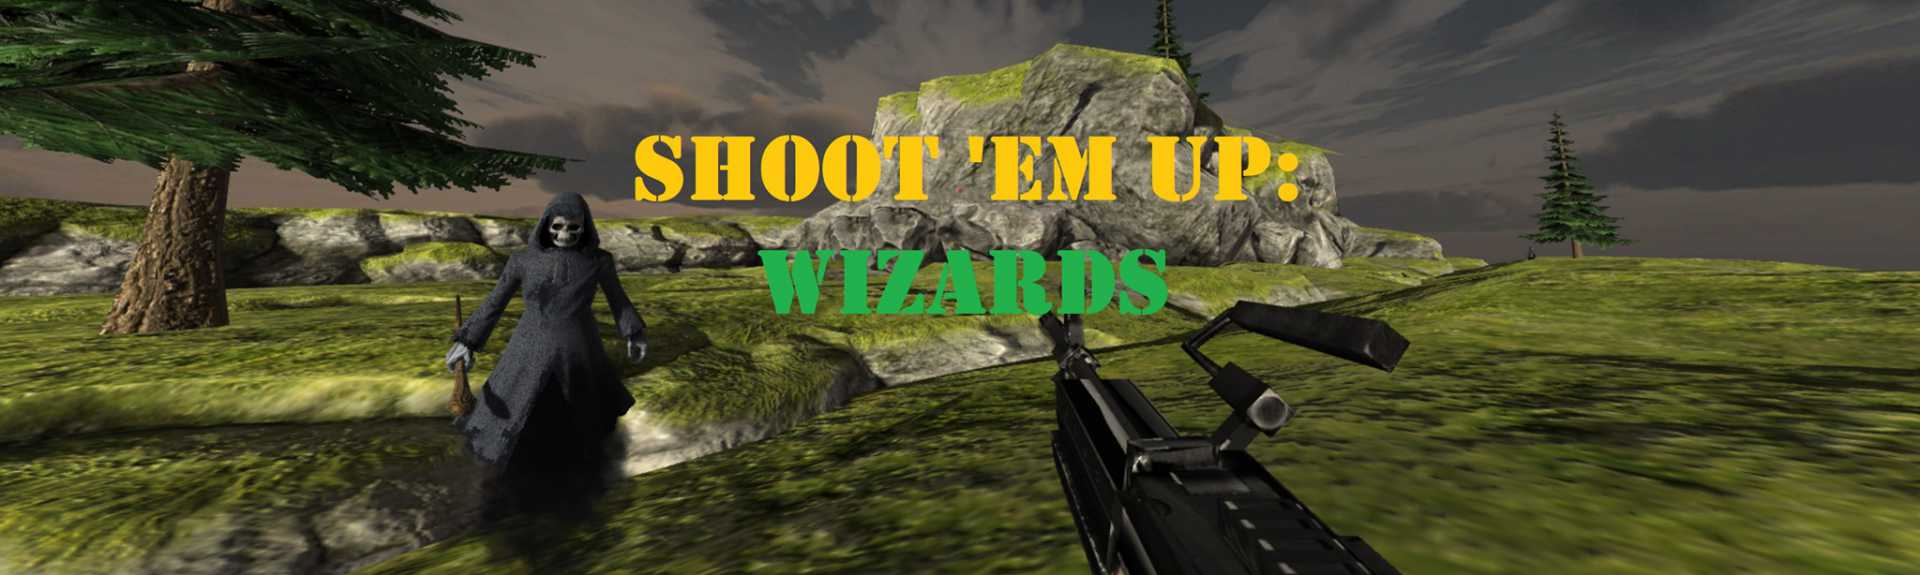 Shoot 'Em Up: Wizards